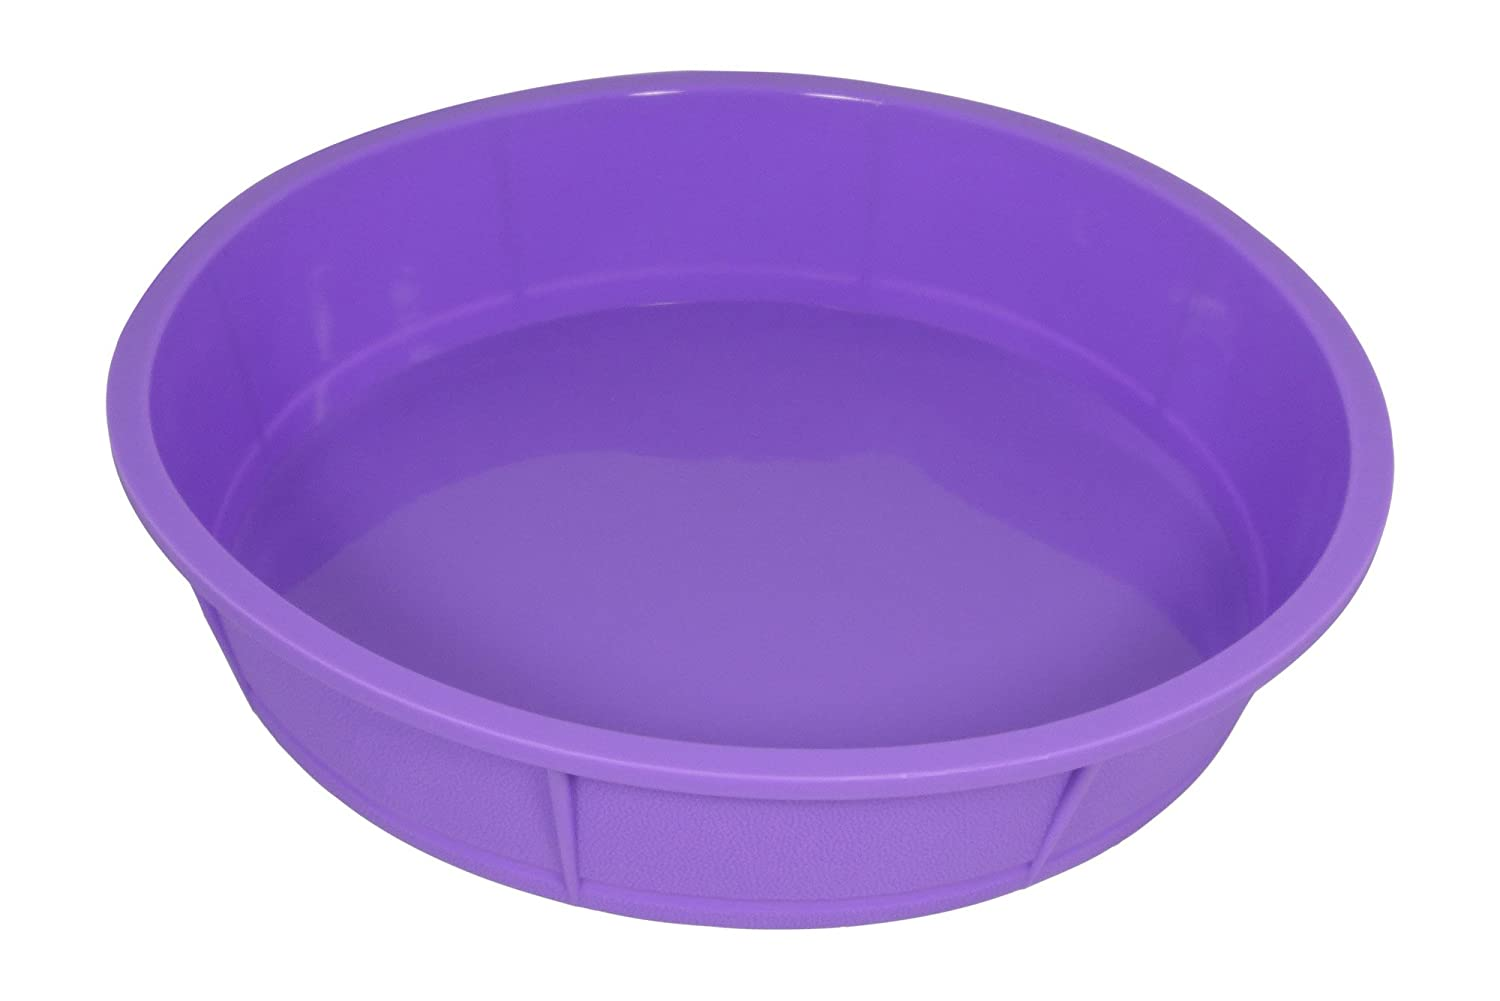 Bakerpan Premium Silicone Round Cake Pan, Round Mold, 10 Inches (Purple, 1) 02032